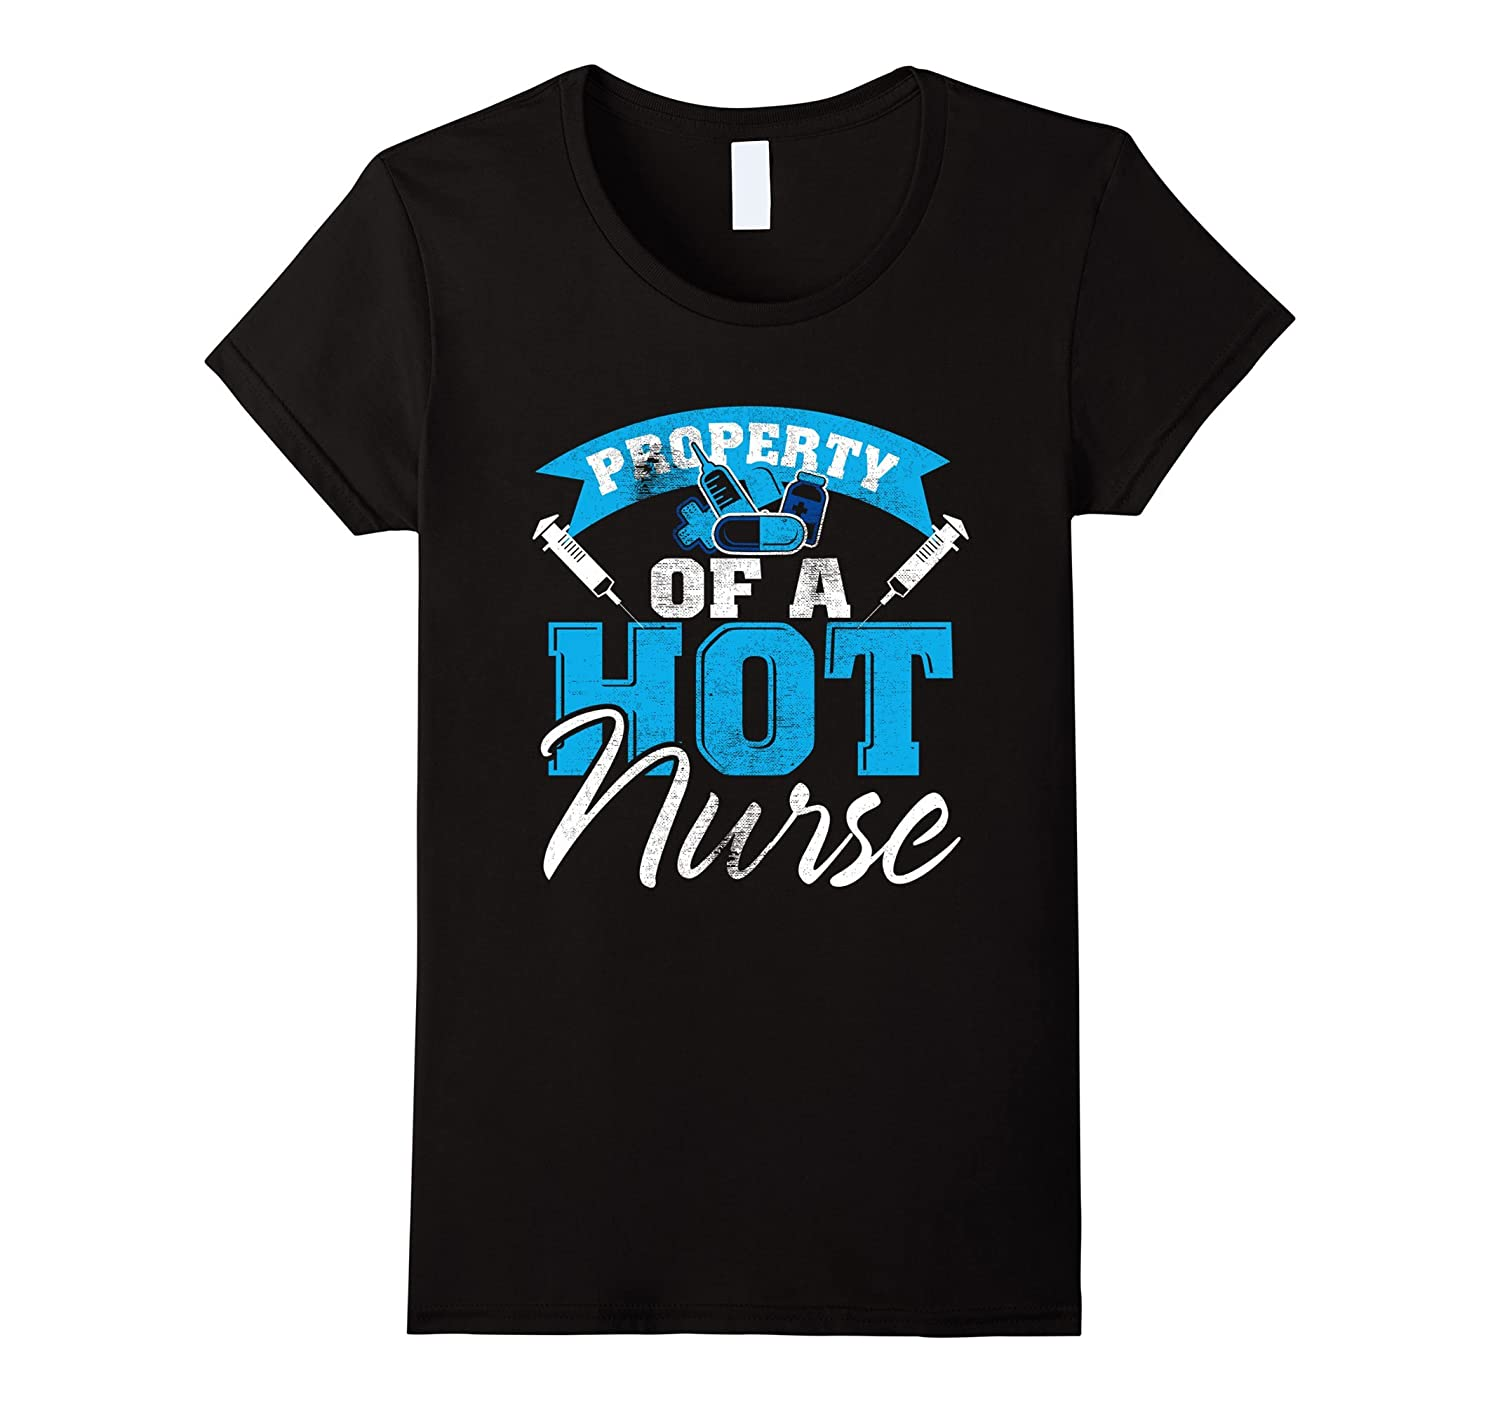 Nurses Day Gifts Property Of A Hot Nurse T-Shirt